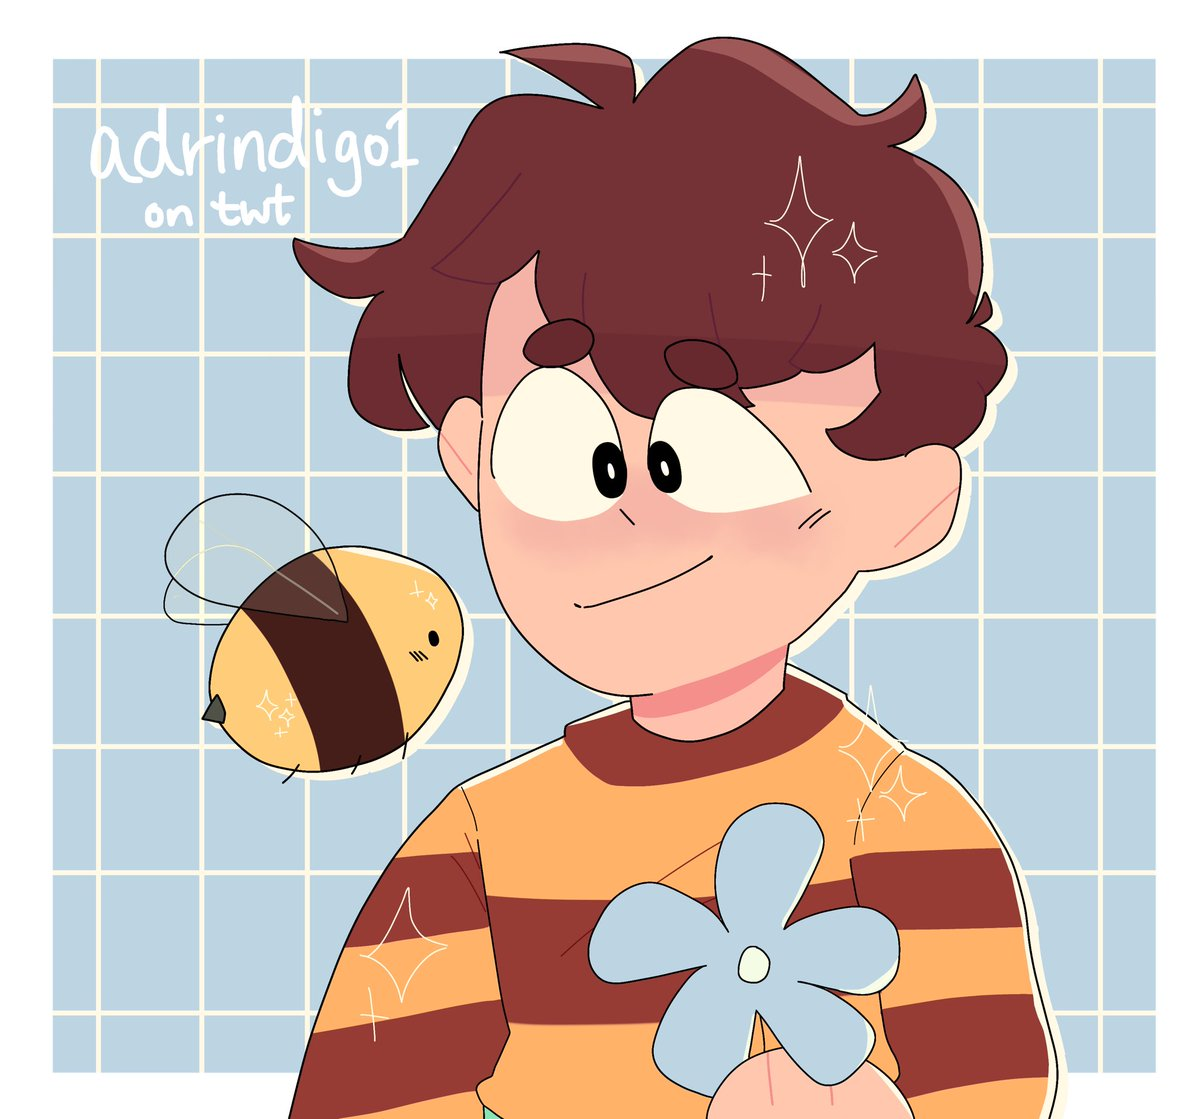 mmm heres some tubbo fanart bc yeah the bee man deserves it :))  #tubbofanart #tubbo1mil #TUBBO #mcytfanart #mcyttwt